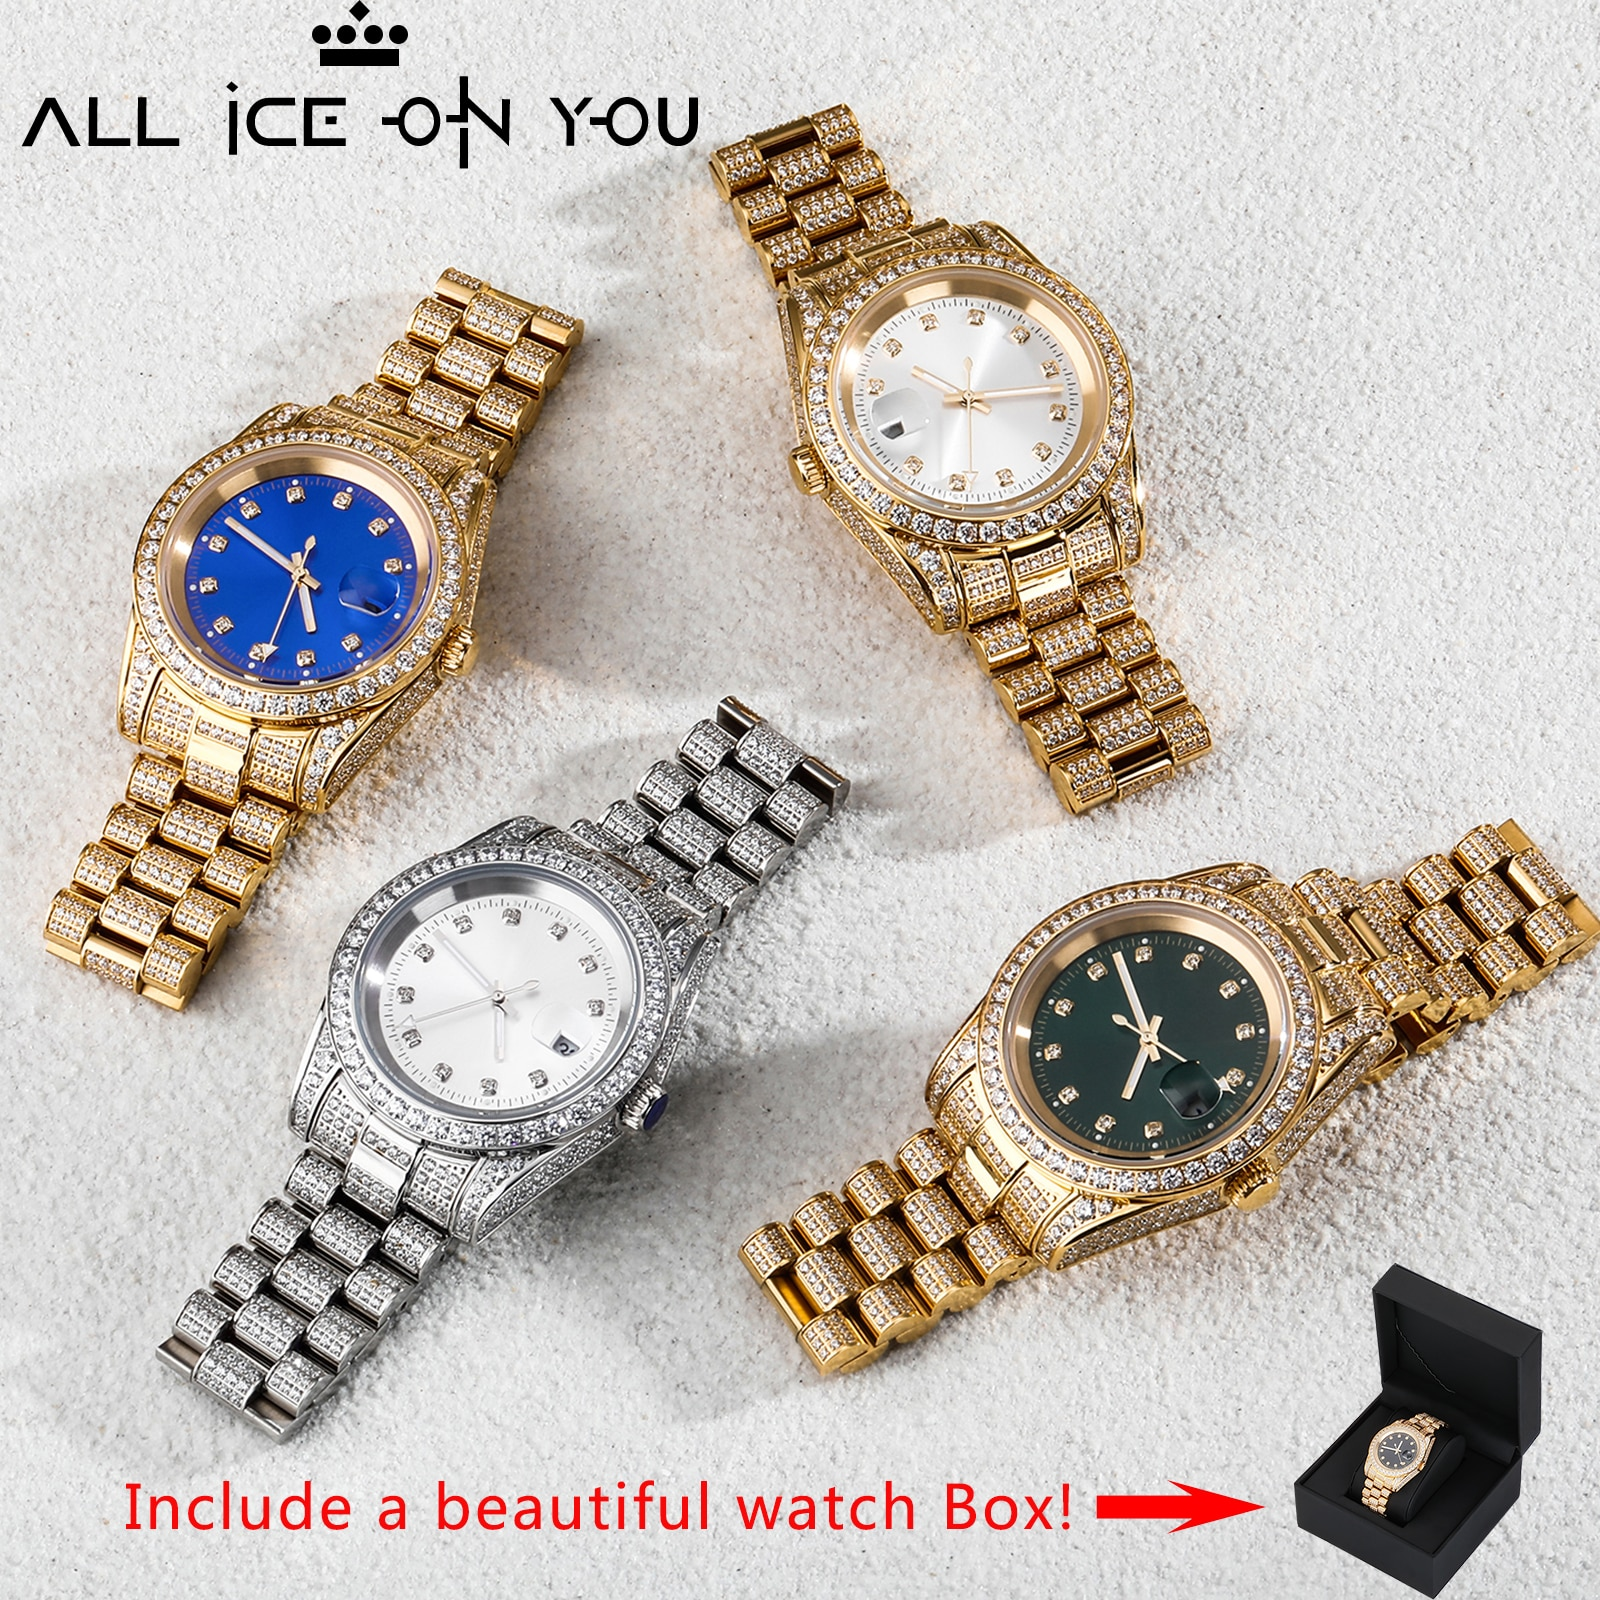 2021 New Masculino Men Watches Bracelet Stainless steel Luxury Famous Top Brand Men\'s Fashion Iced Out Quartz Wristwatches Box